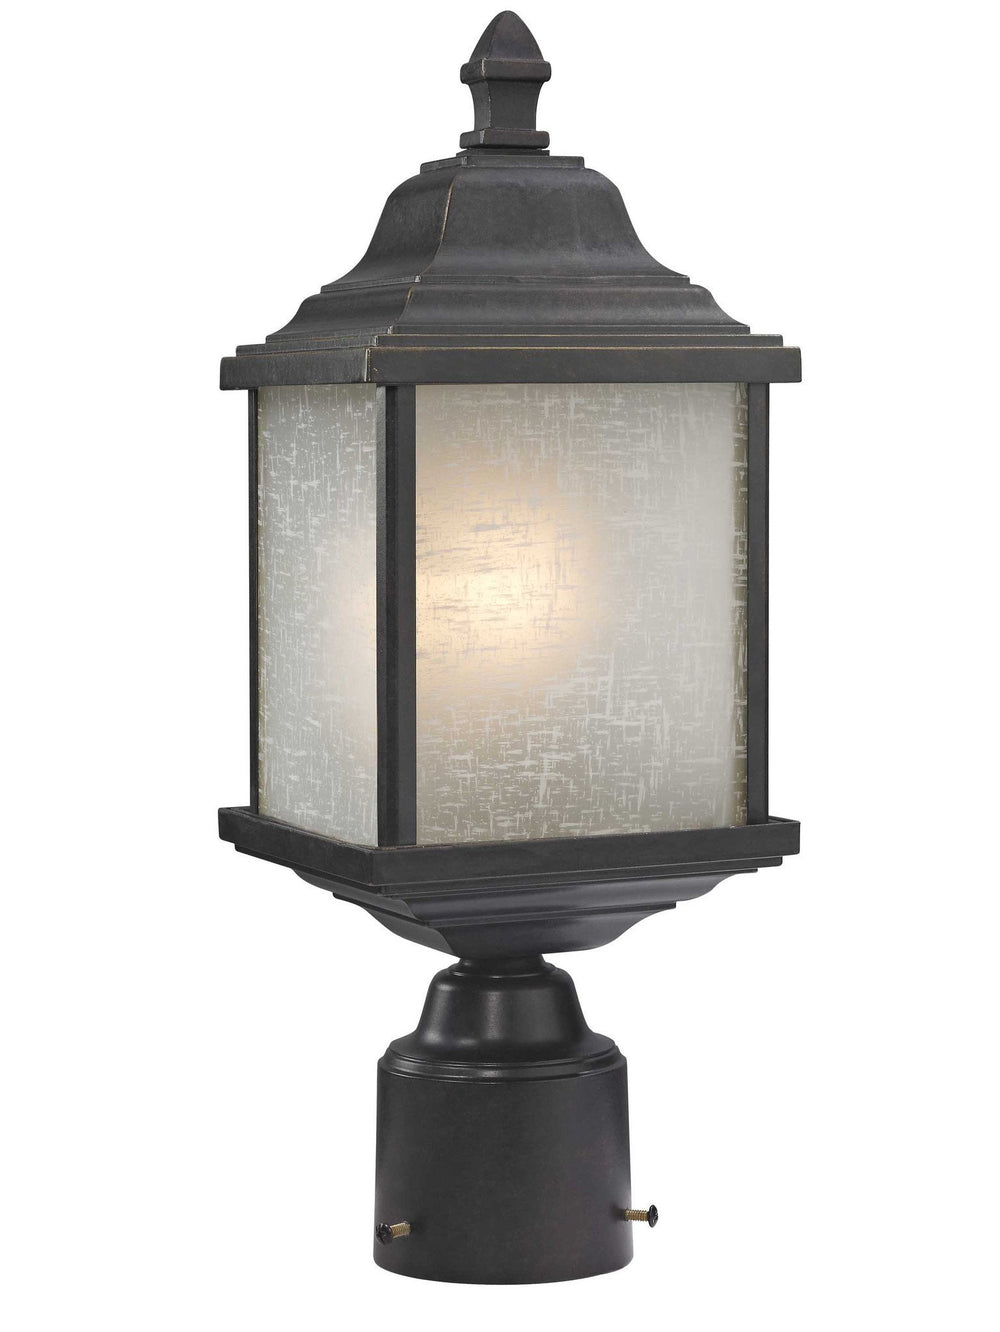 932-68 Dolan Designs Charleston 1 Light Exterior Post Winchester